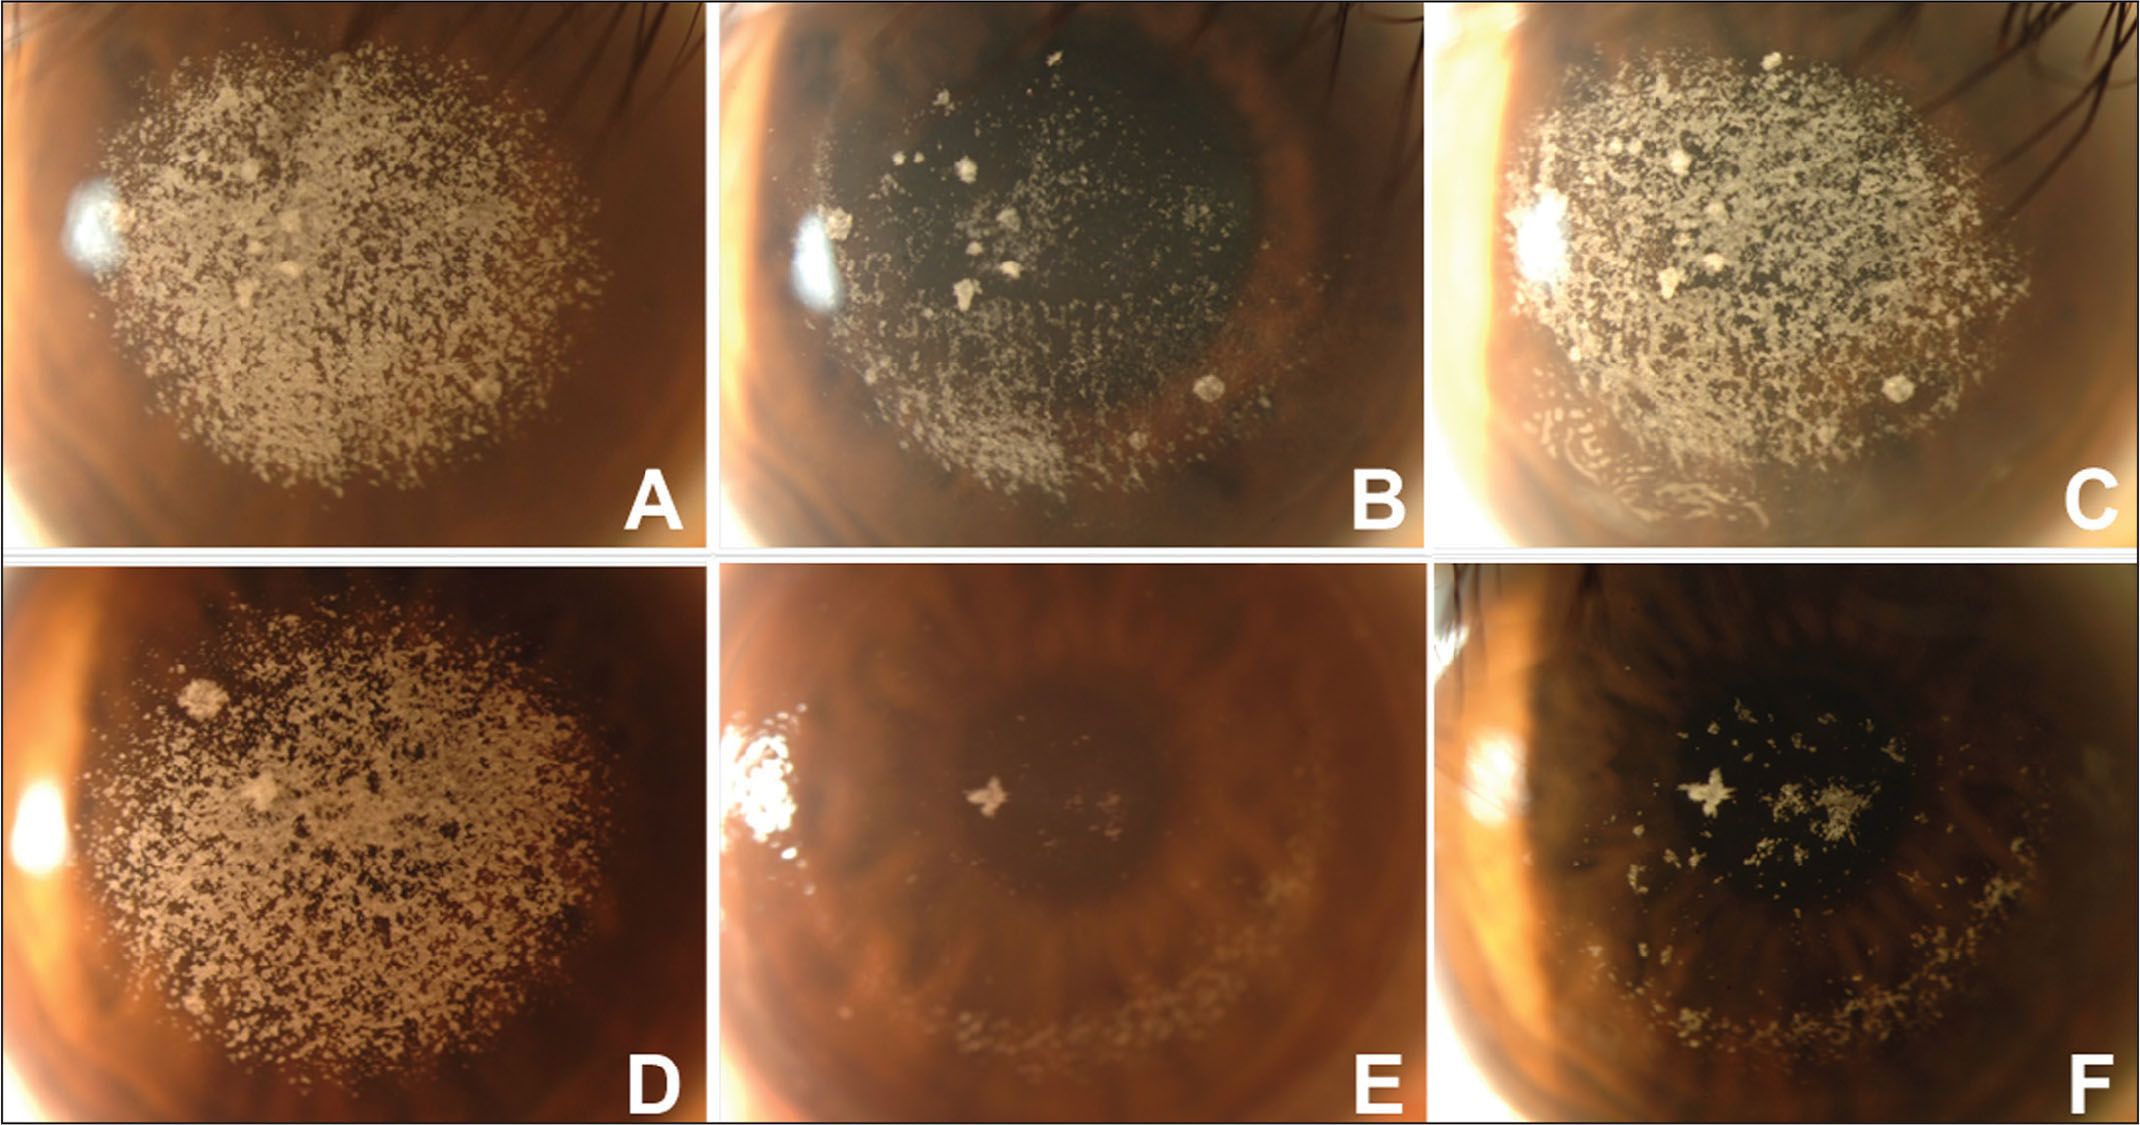 Slit-lamp photographs revealing the recurrence and epithelial ingrowth after phototherapeutic keratectomy (PTK) in an eye that received flap conservation. (A) Right eye of a patient with granular corneal dystrophy type 2 exacerbated after LASIK before PTK. (B) Right eye of the same patient 10 days after PTK with flap conservation. (C) Right eye of the same patient with epithelial ingrowth in inferior and significant recurrence 35 months after PTK. (D) Left eye of the same patient before PTK. (E) Left eye of the same patient 10 days after PTK with flap removal. (F) Left eye of the same patient with some recurrence 36 months after PTK.